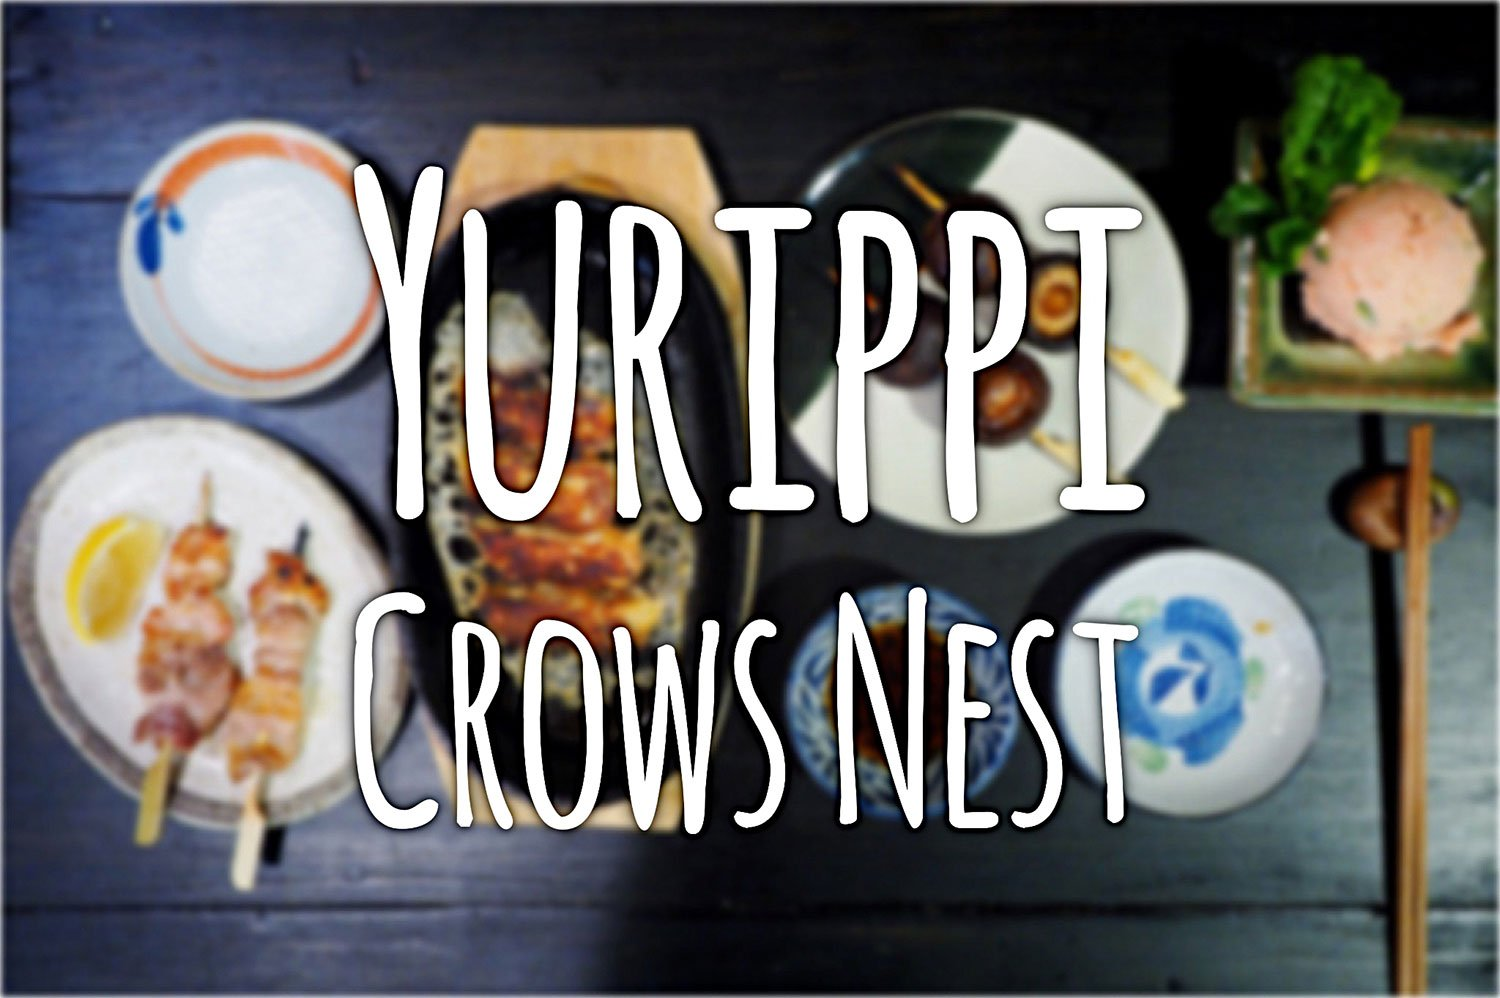 Yurippi, Crows Nest. Sydney Food Blog Review